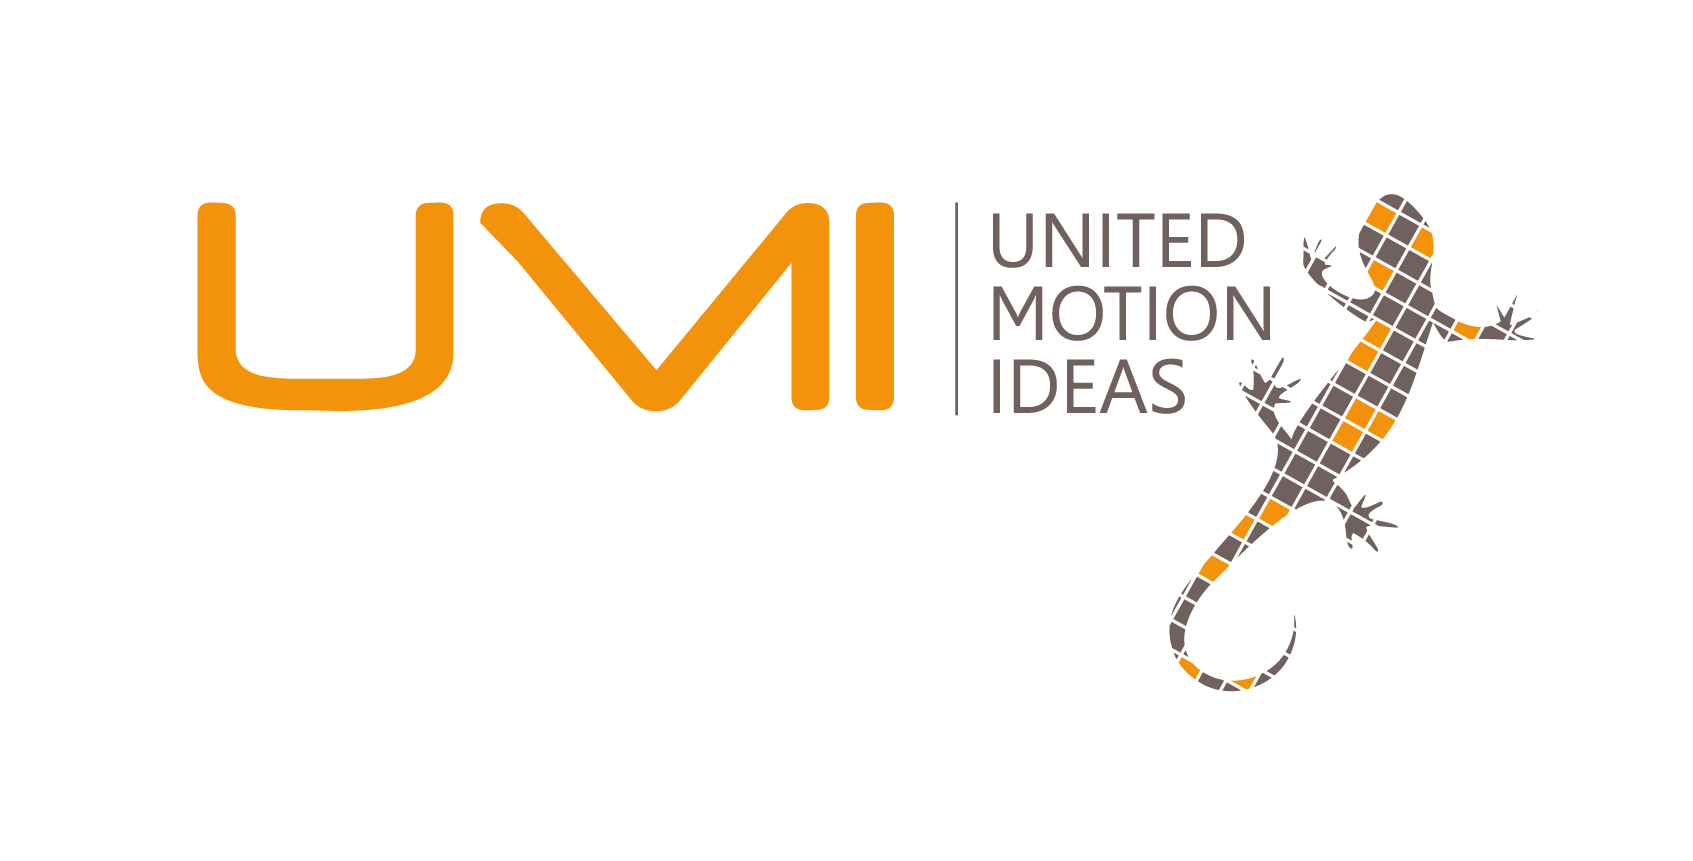 UNITED MOTION IDEAS